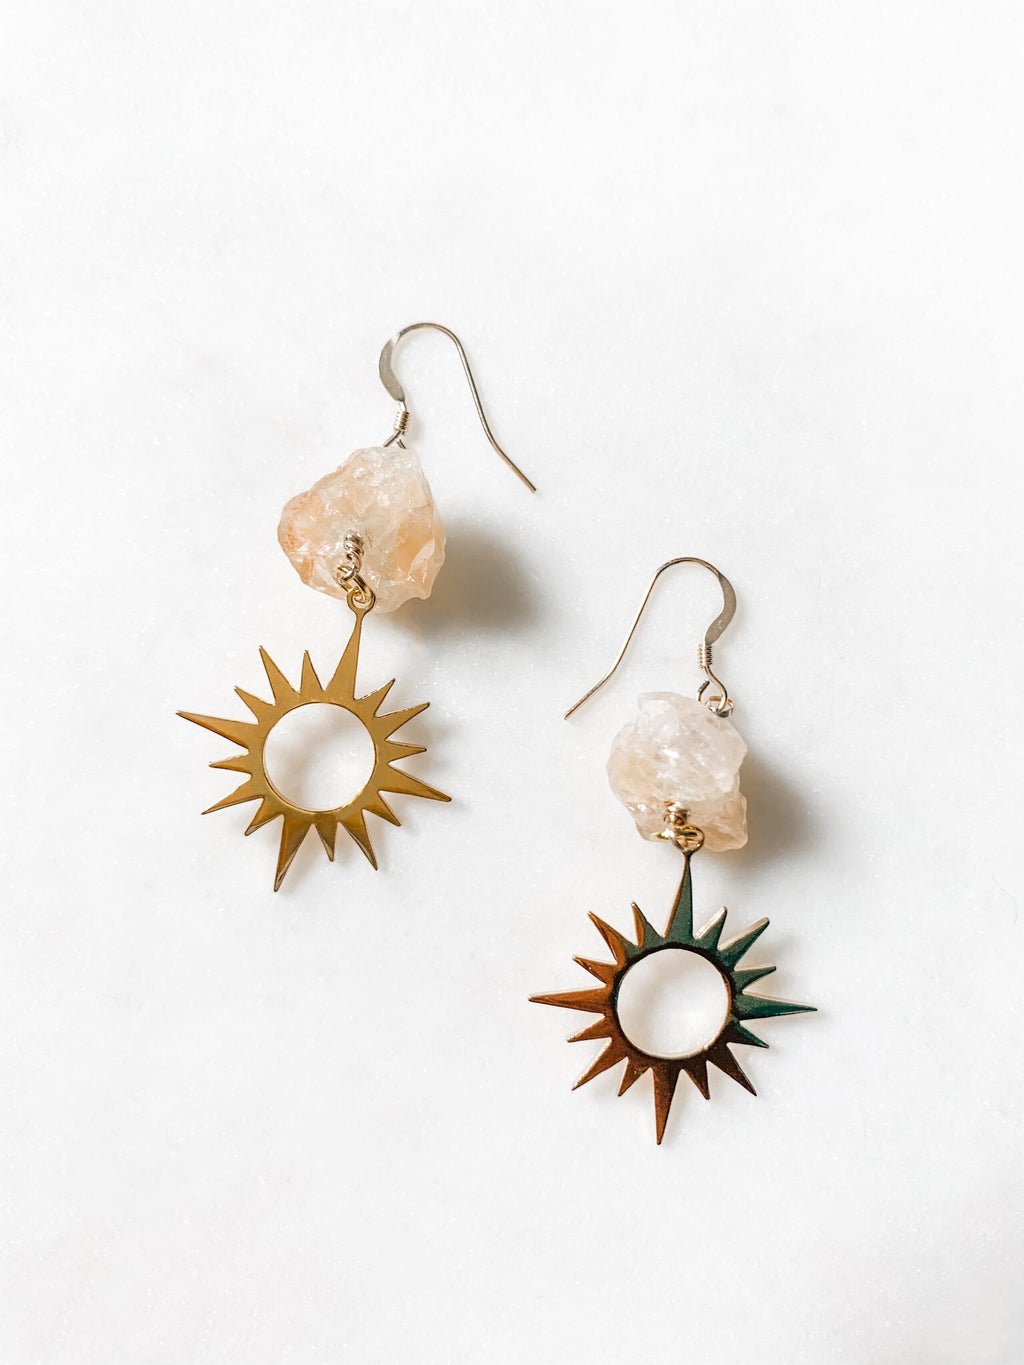 Golden Sun - Citrine Quartz Earrings - The Pretty Eclectic